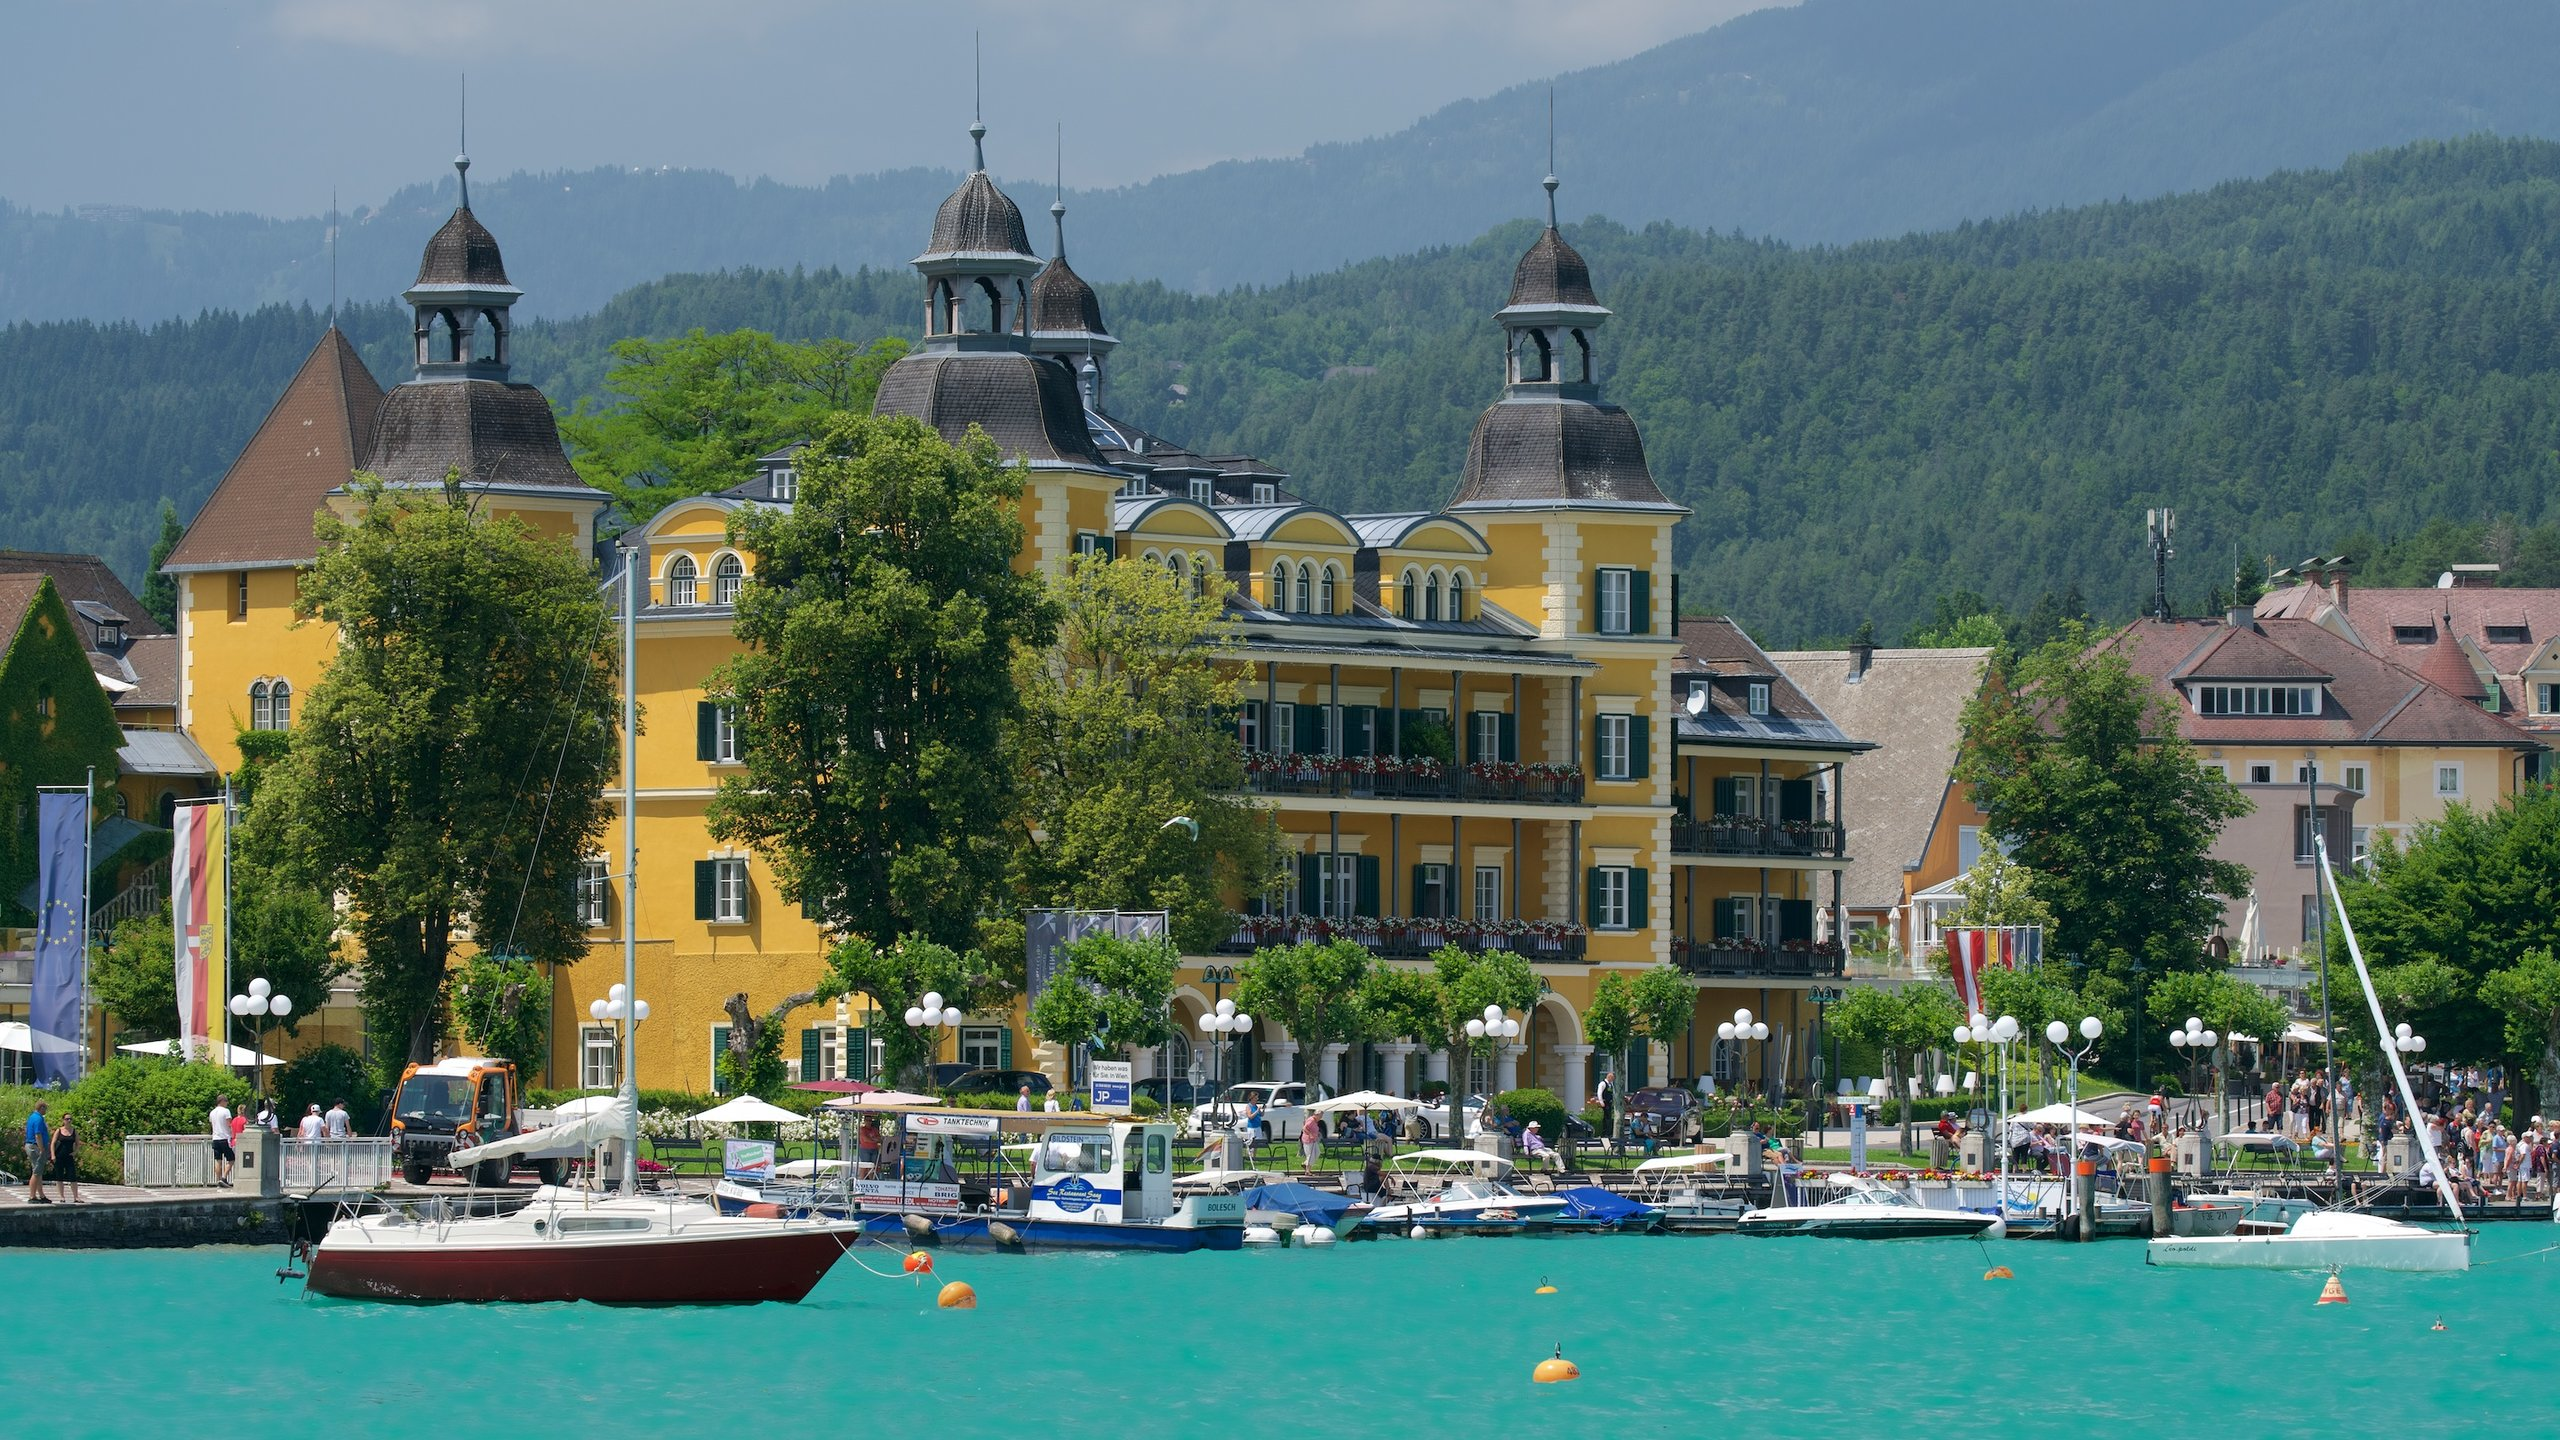 Events am Wrthersee - Wrthersee